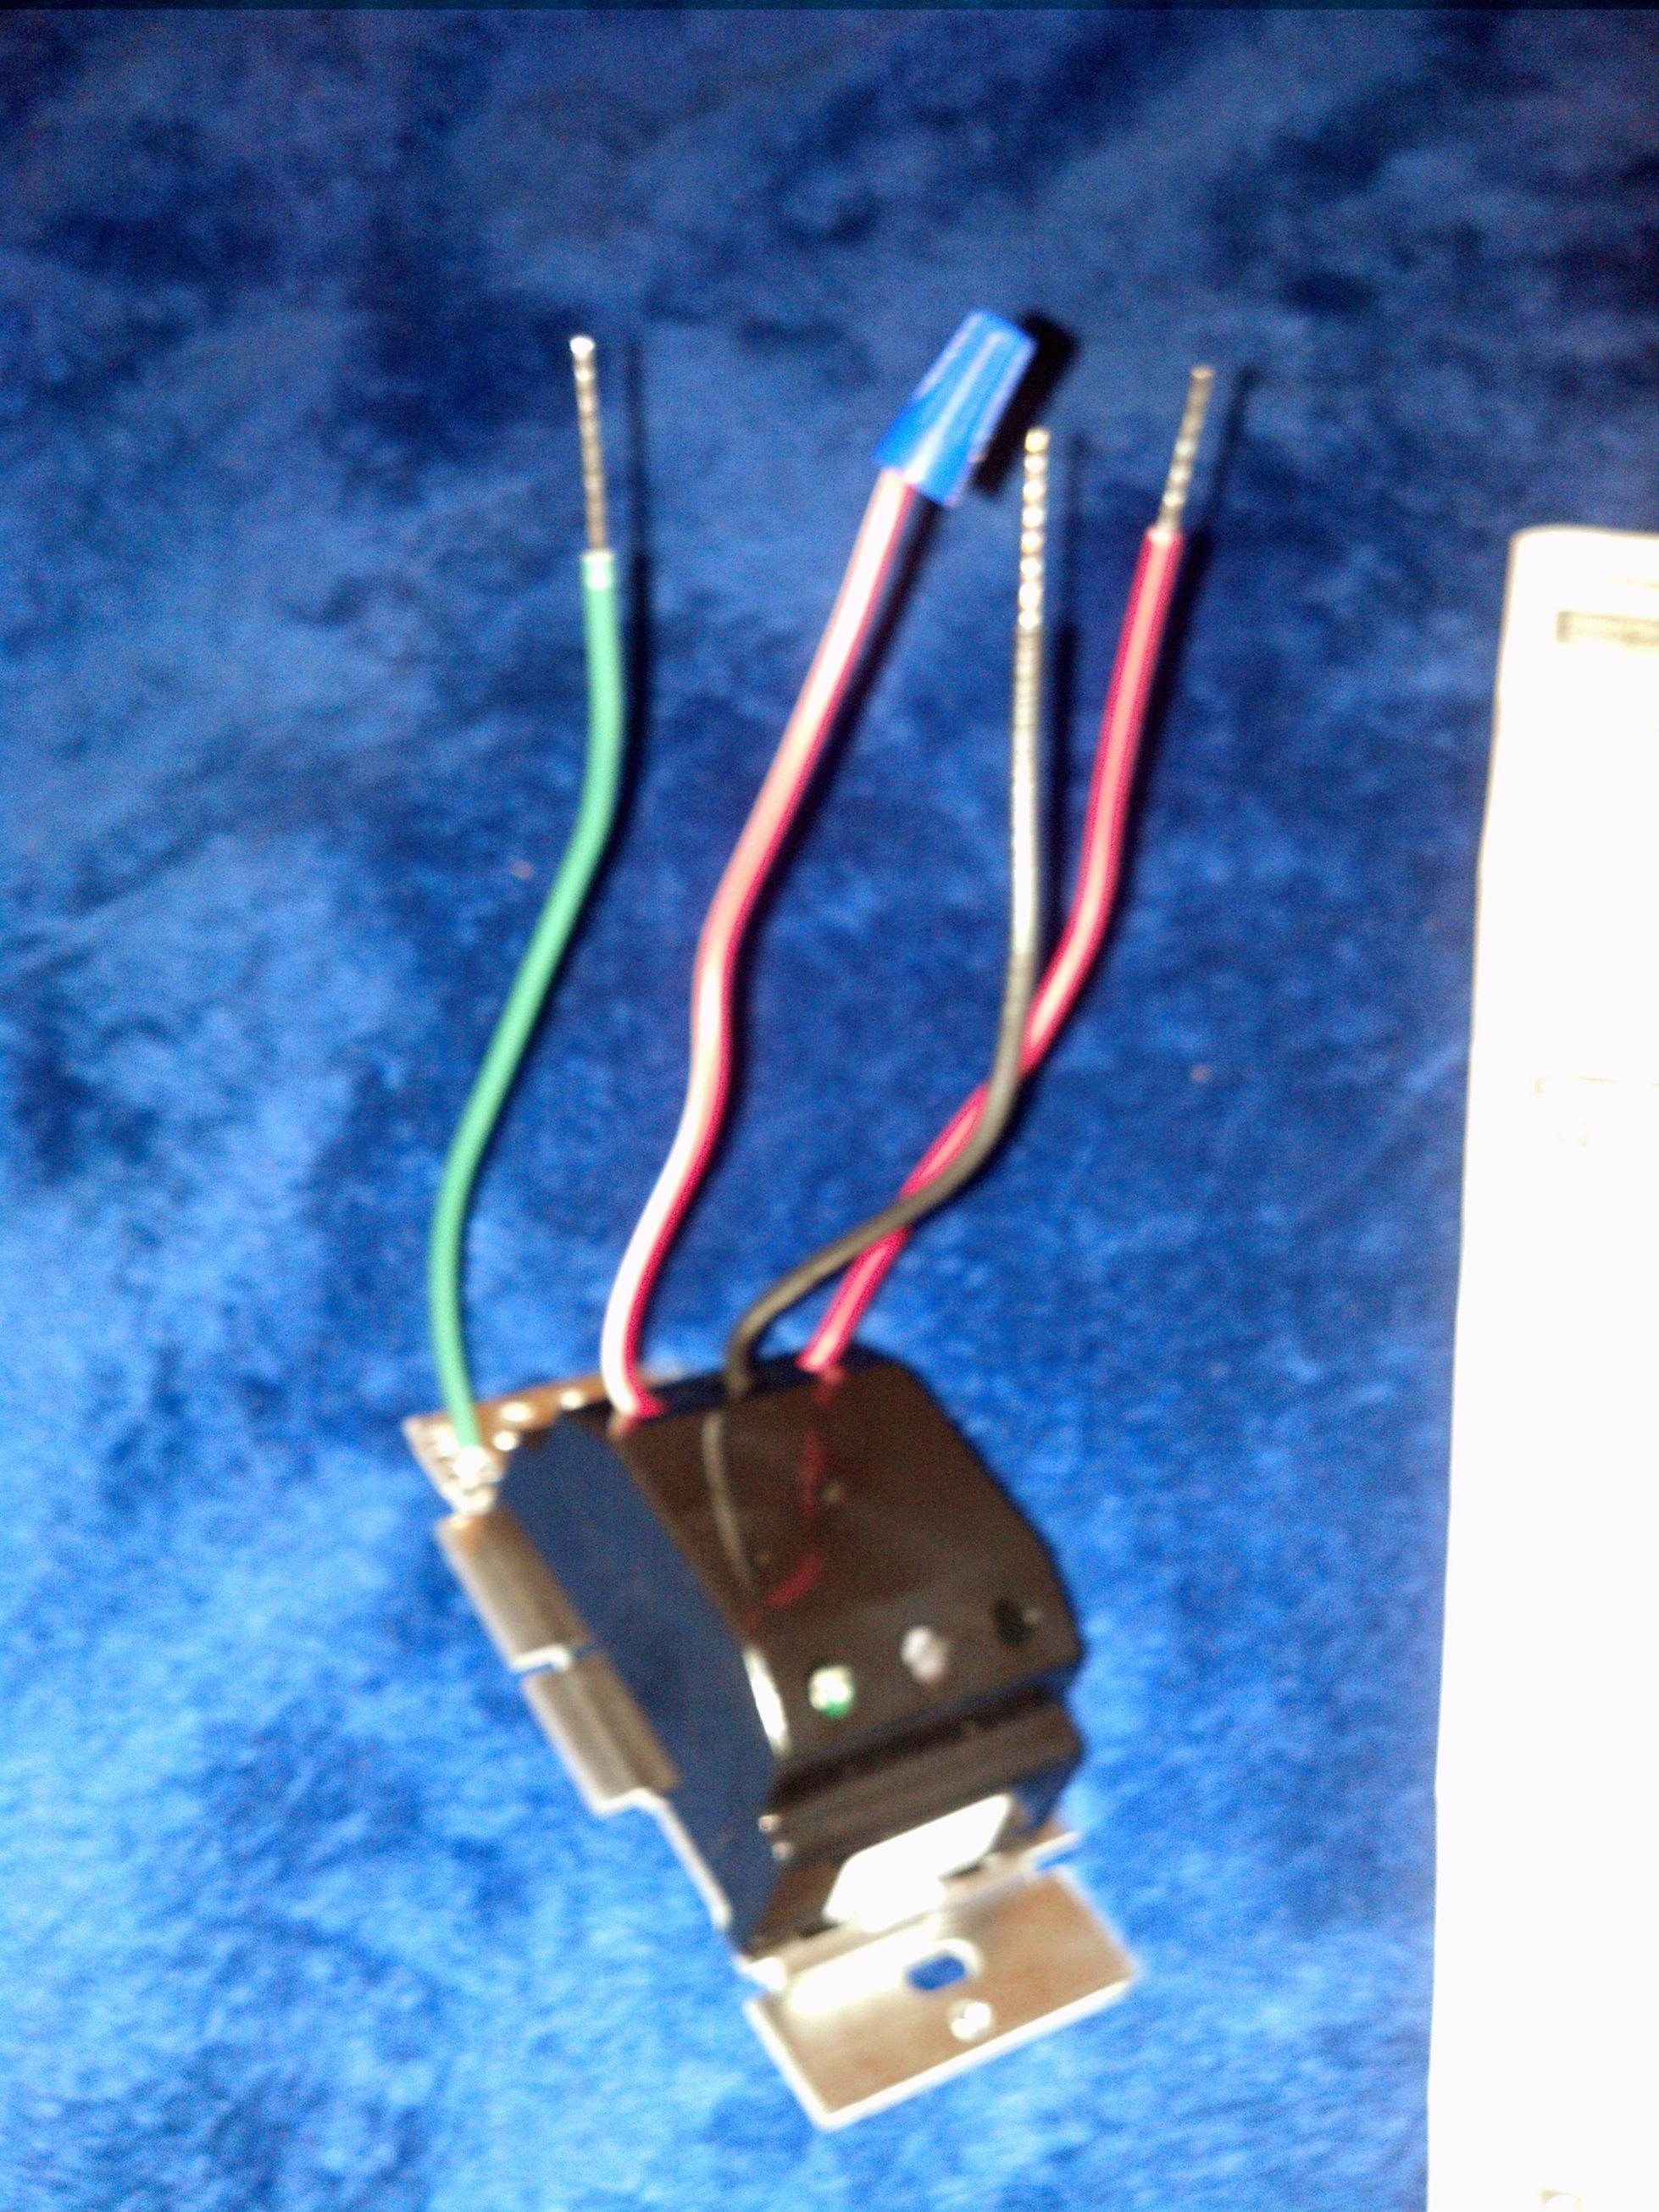 Lutron Cl Dimmer Wiring - Great Installation Of Wiring Diagram • - Lutron Cl Dimmer Wiring Diagram